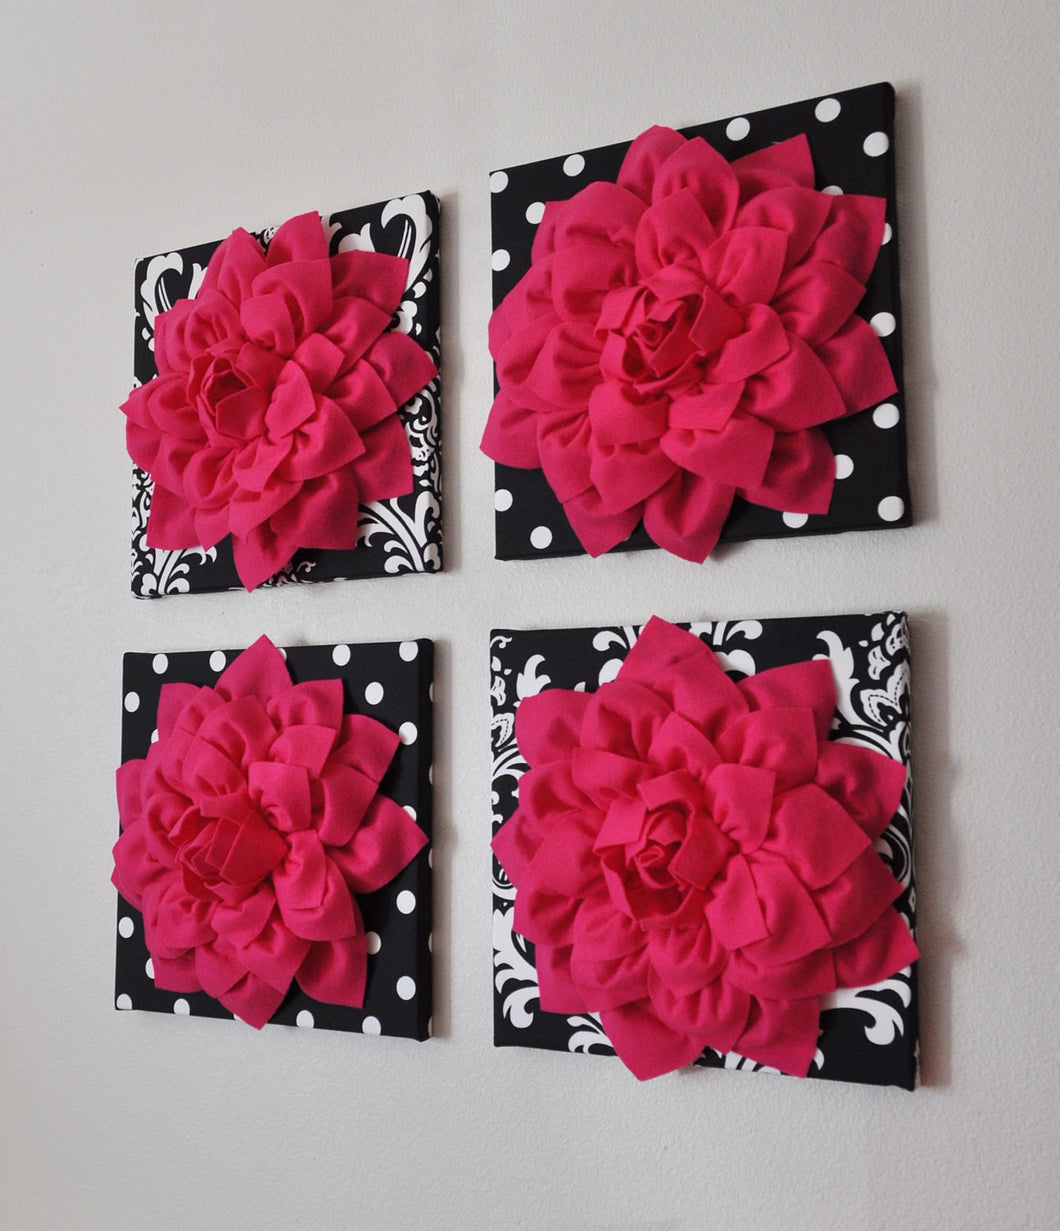 Hot Pink Dahlia Decor On Black And White Print Canvases 3d Flower Wall Daisy Manor